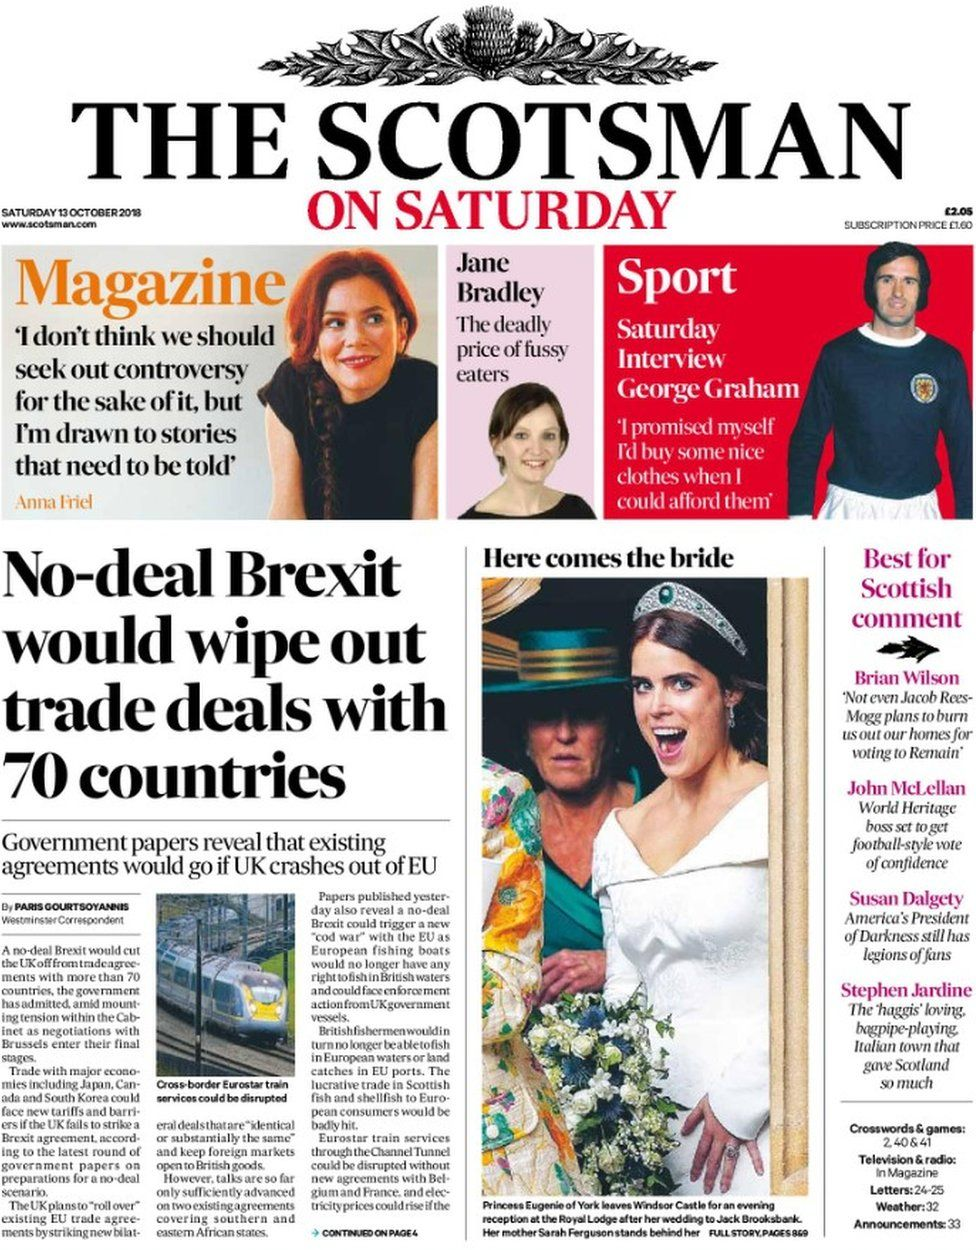 The papers: Brexit trade deals 'wipeout' and benefits call - BBC News